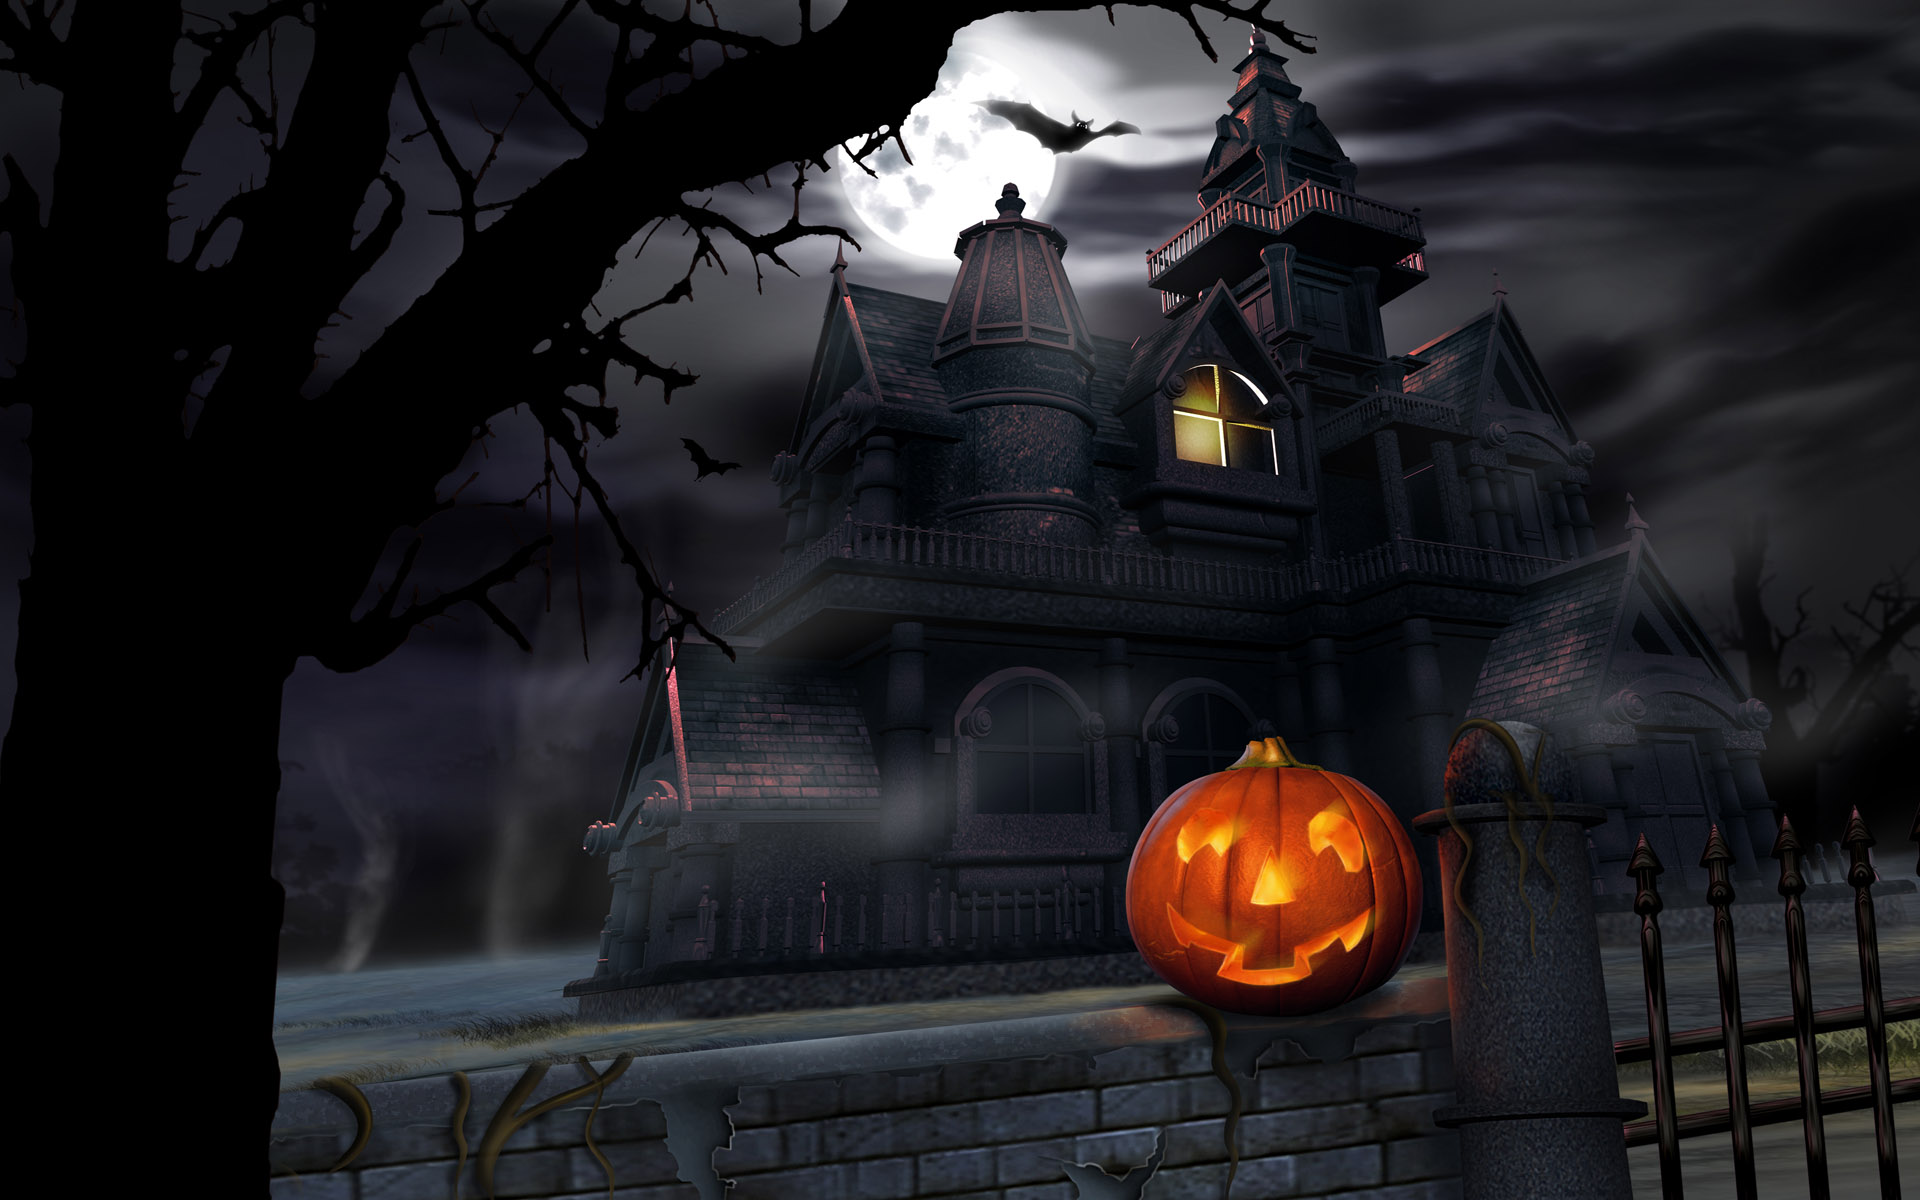 halloween wallpaper hd for this halloween 2018 | pixelstalk